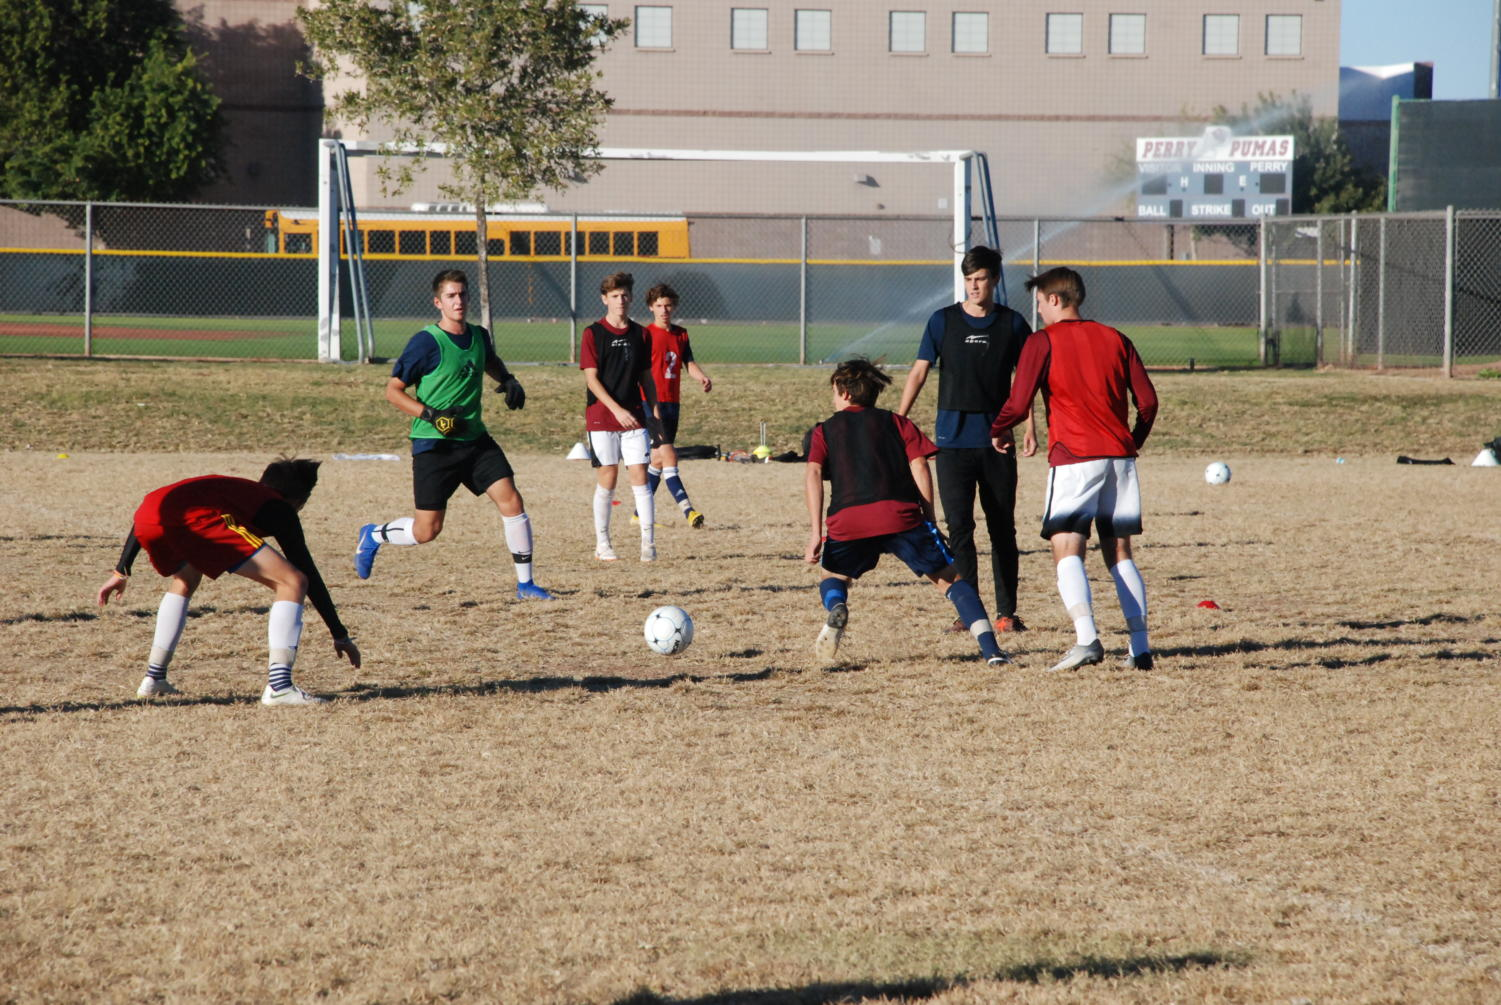 Varsity soccer practices in a scrimmage against one another to prepare to the kick-off game Dec. 1.